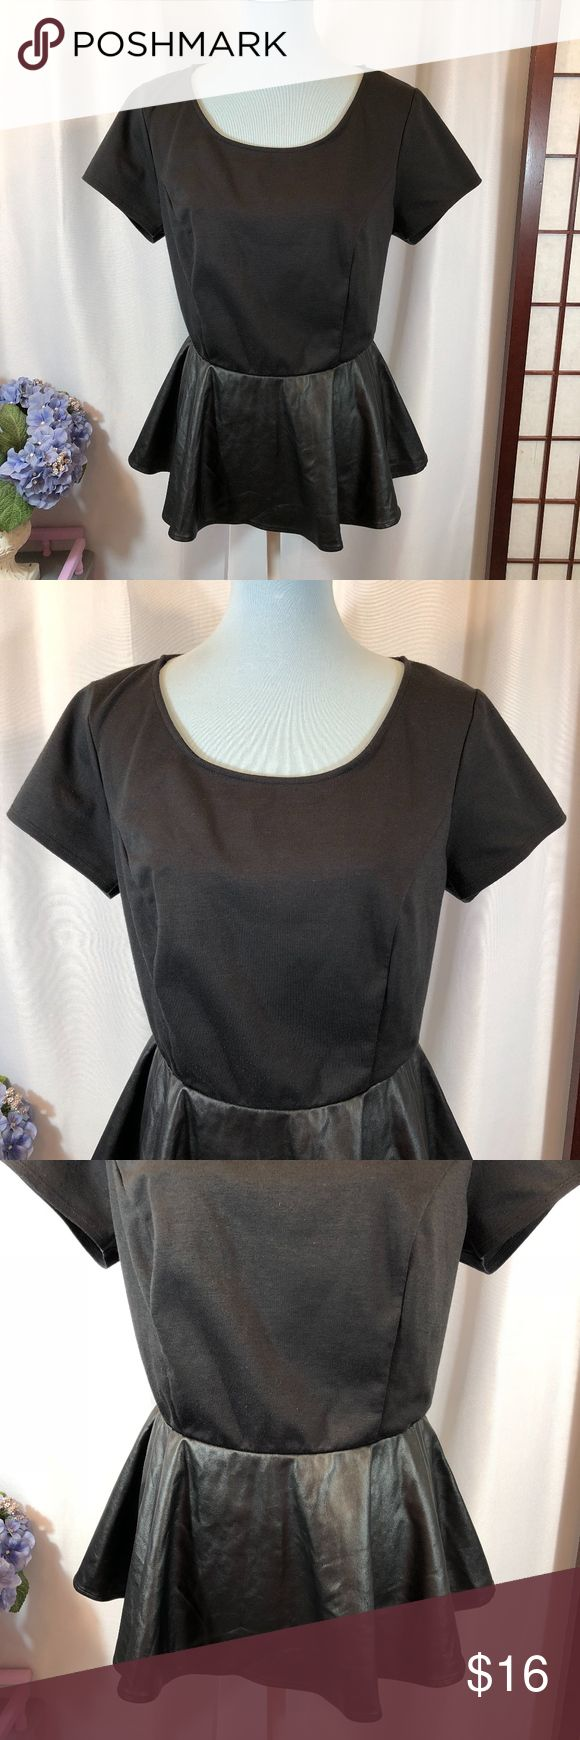 """Forever 21 Black Knit Faux Leather Peplum Top, 1X Brand: Forever 21 Size: 1X Material: 86% Polyester, 9% Rayon, 5% Spandex (Trim - faux leather; Back - 100% Polyester) Condition: Pre-owned in good condition with no rips, stains, or tears  Approx. Measurements Bust: 40"""" Waist: 32"""" Length: 25"""" Forever 21 Tops"""